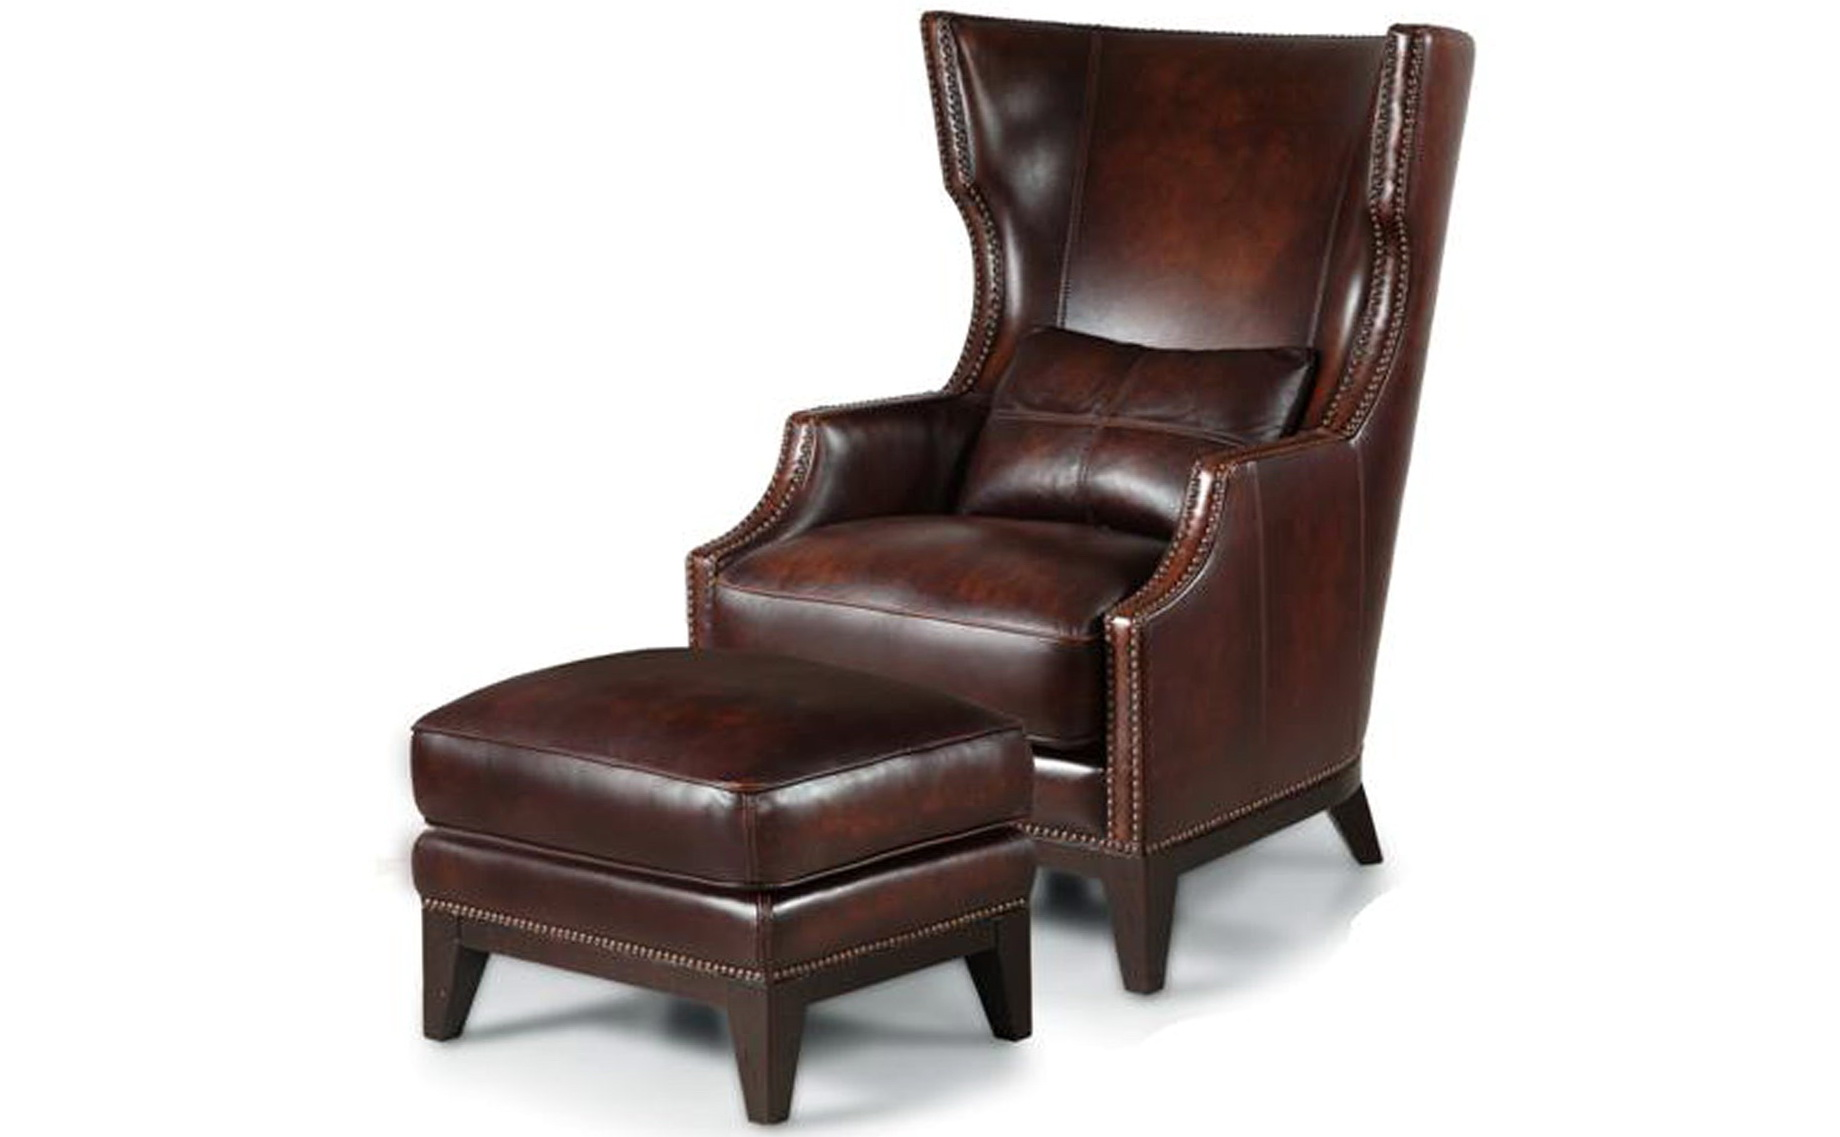 Merveilleux High Back Leather Chair With Ottoman